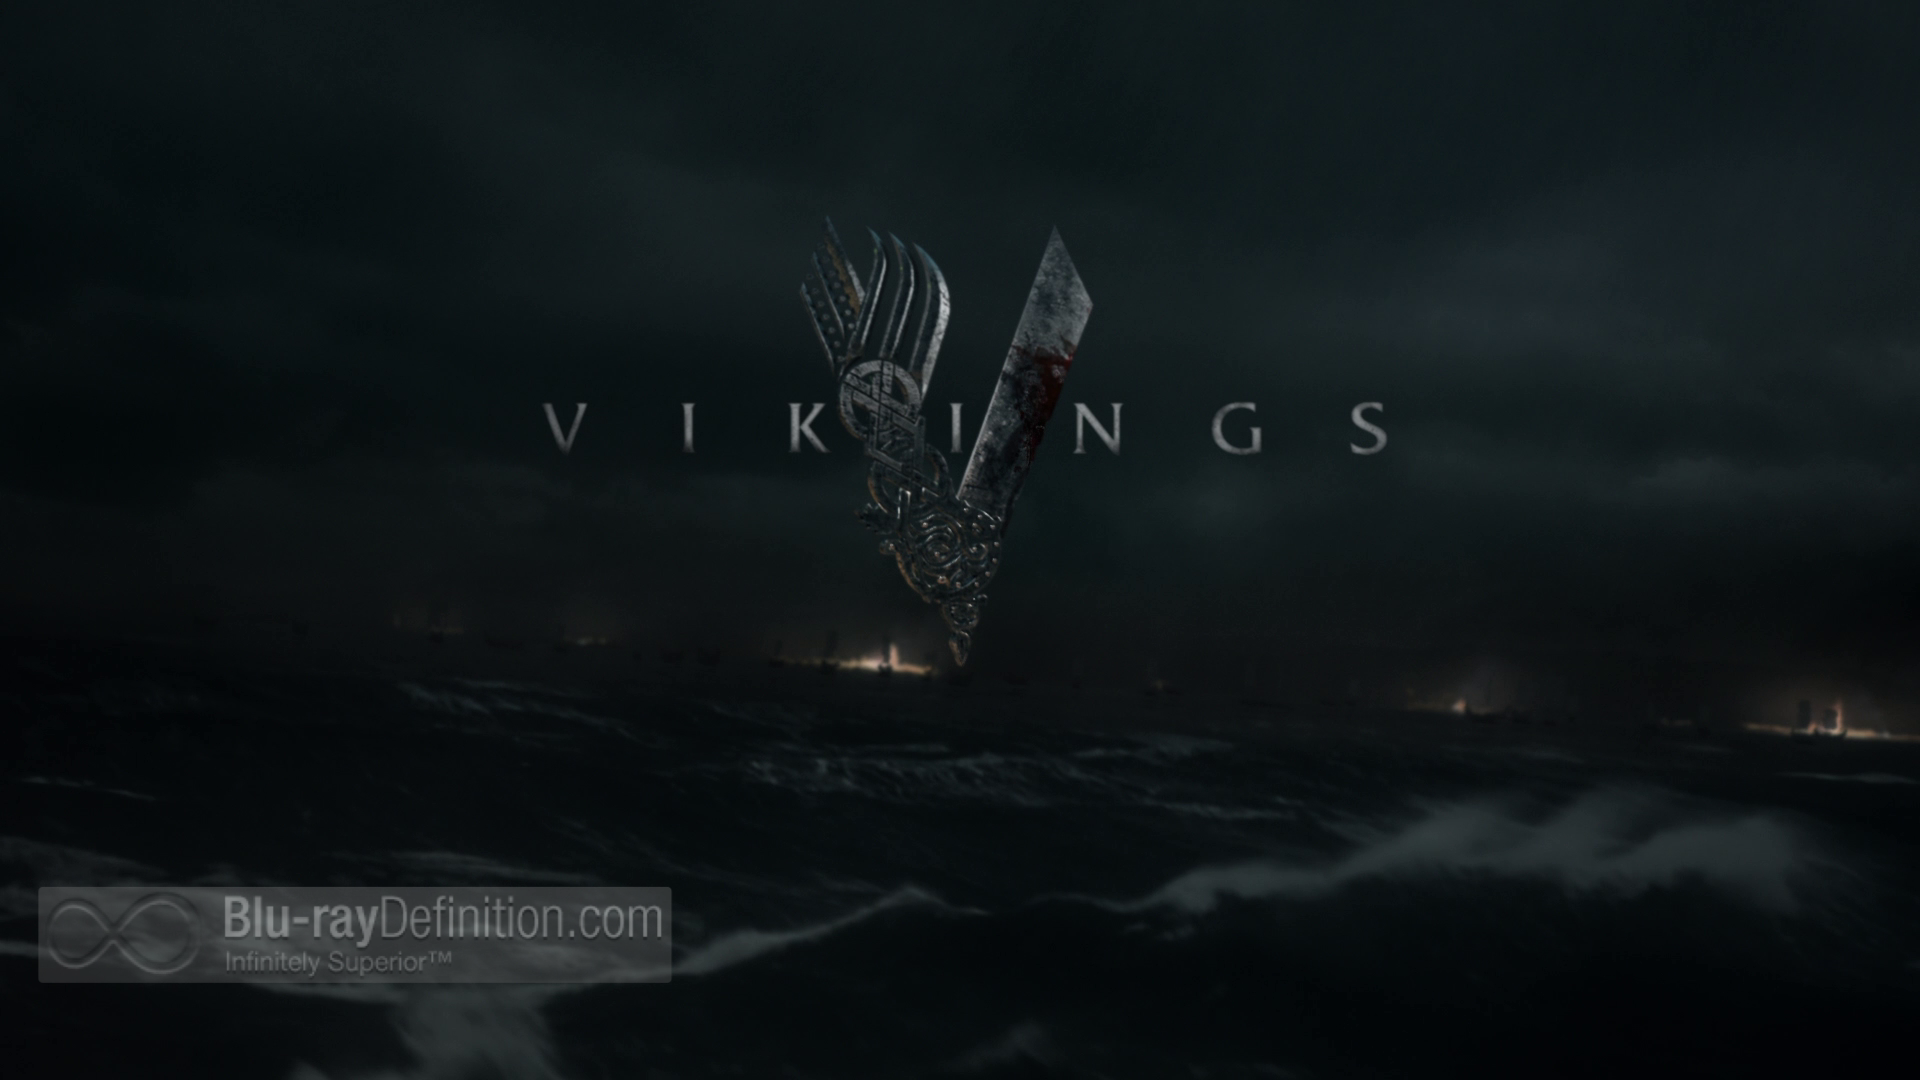 Vikings The Complete First Season Blu ray Review 1920x1080